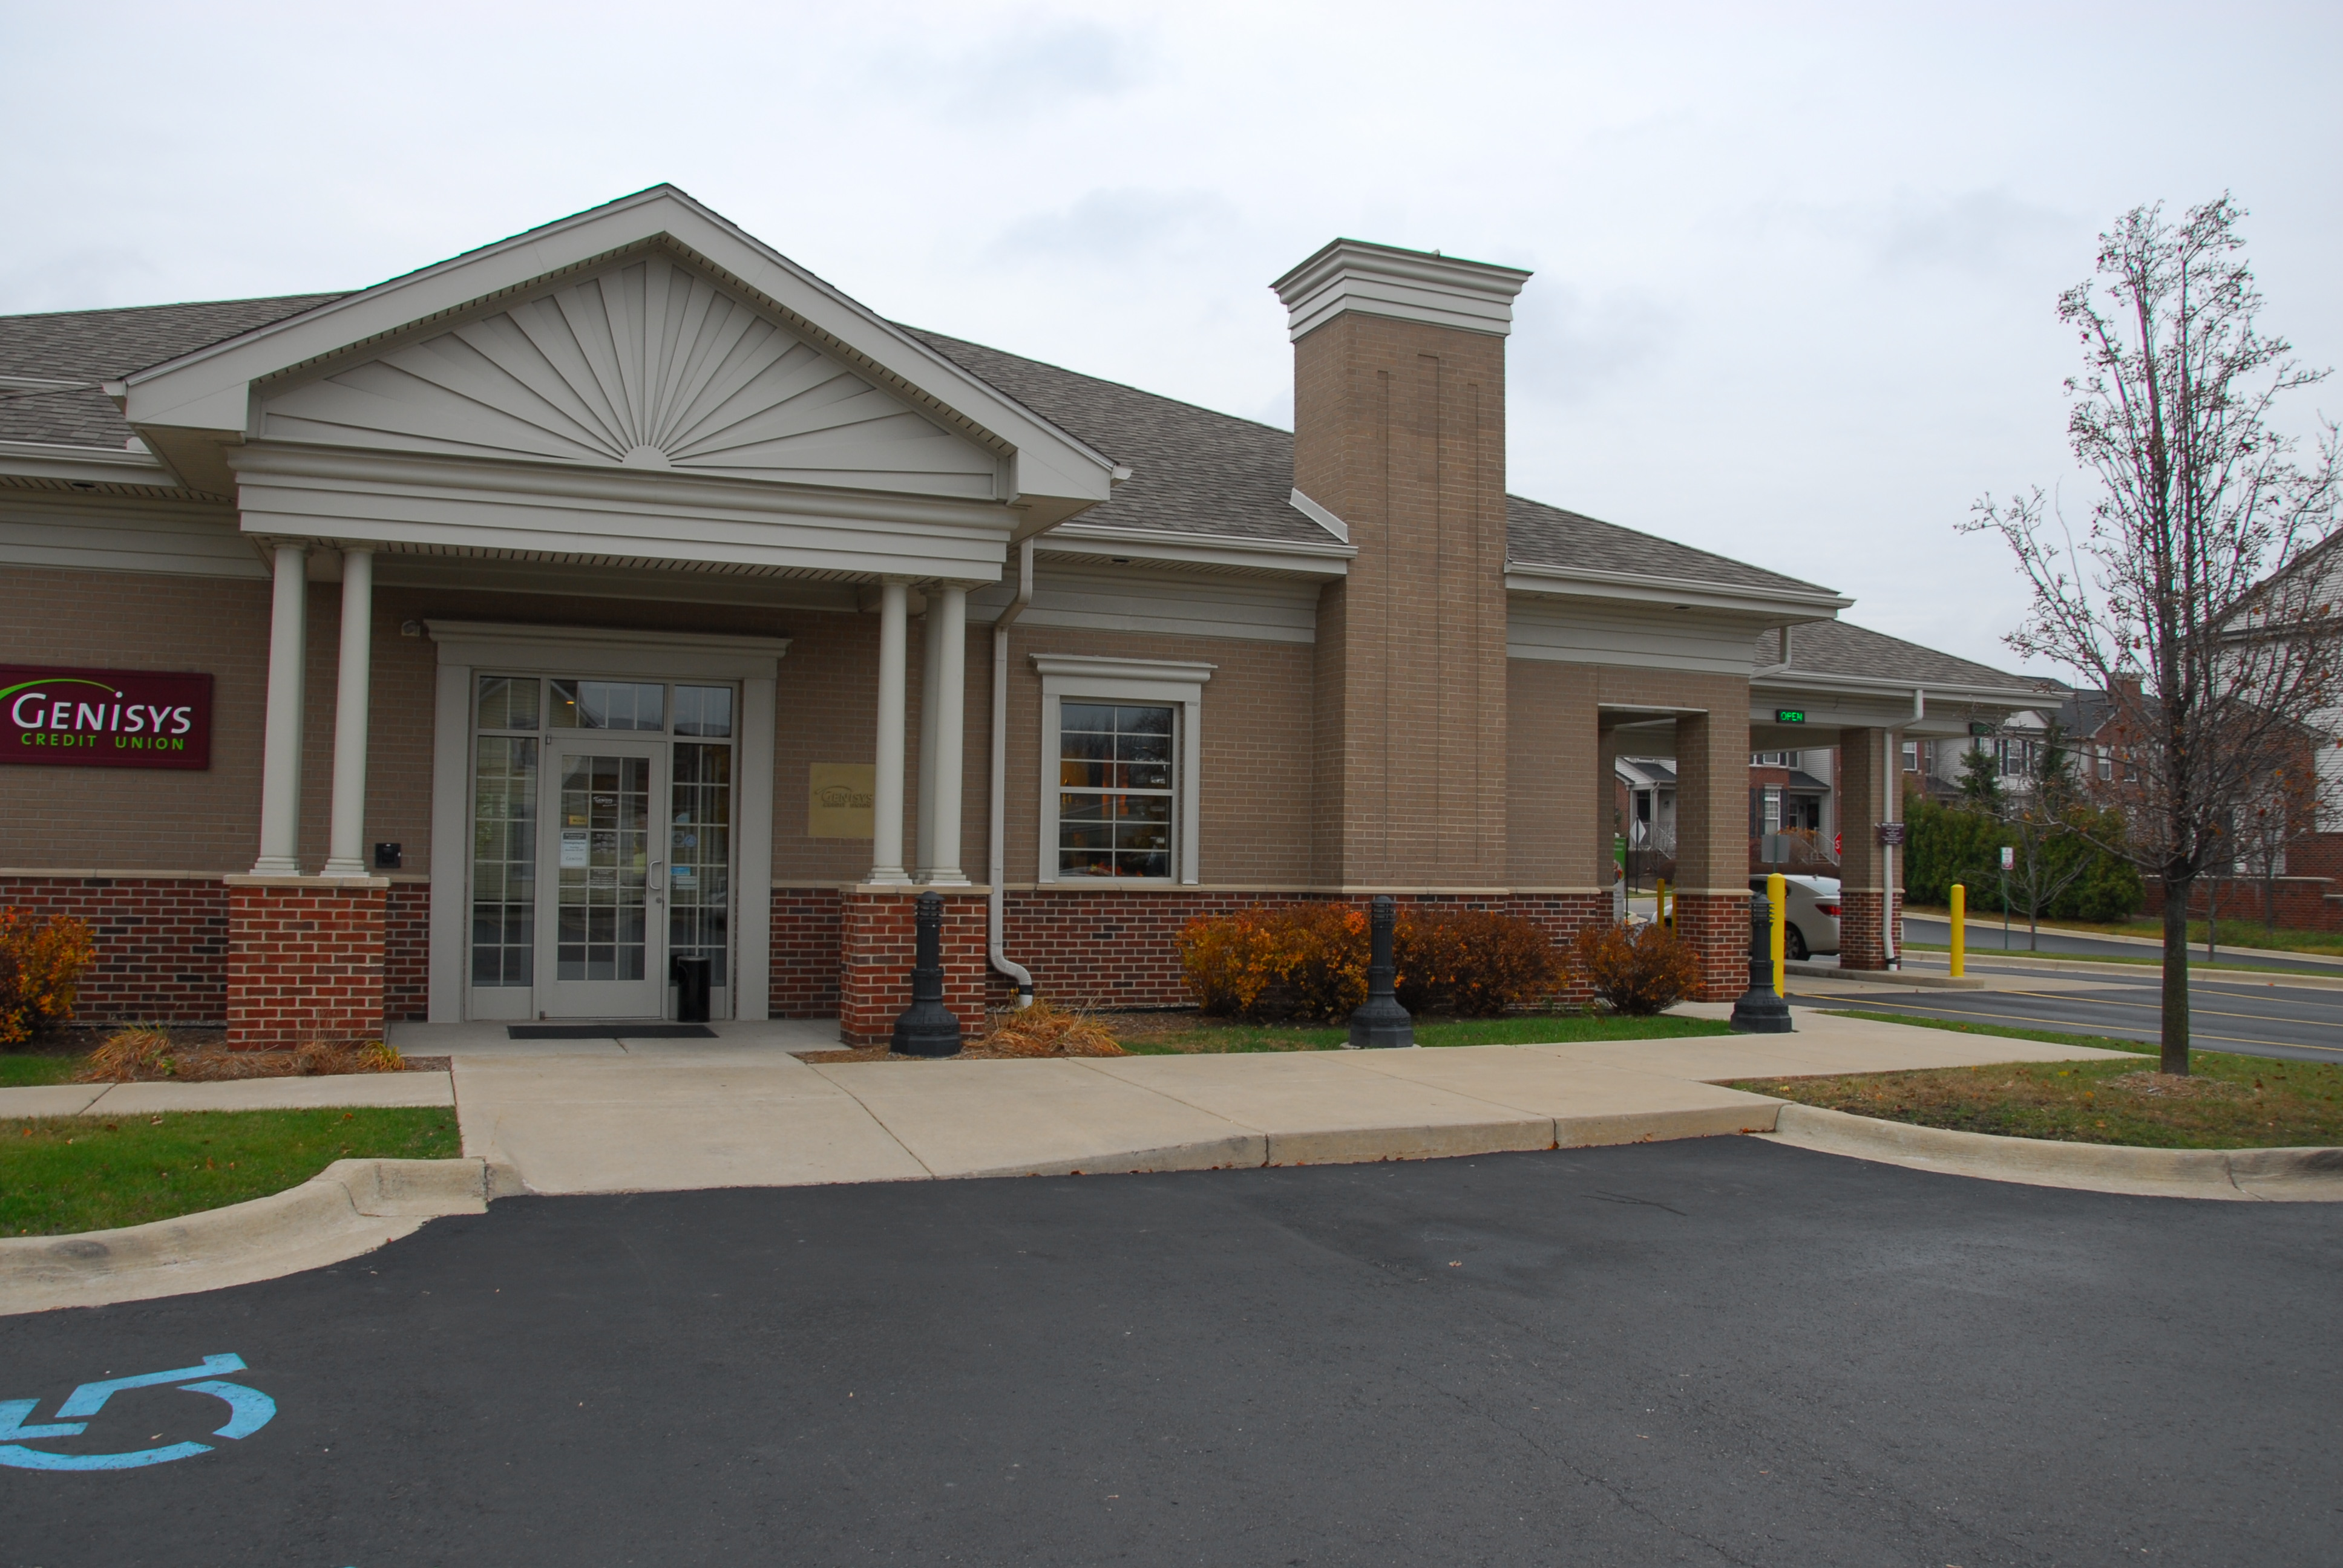 Photograph of Genisys Credit Union's Wixom Branch